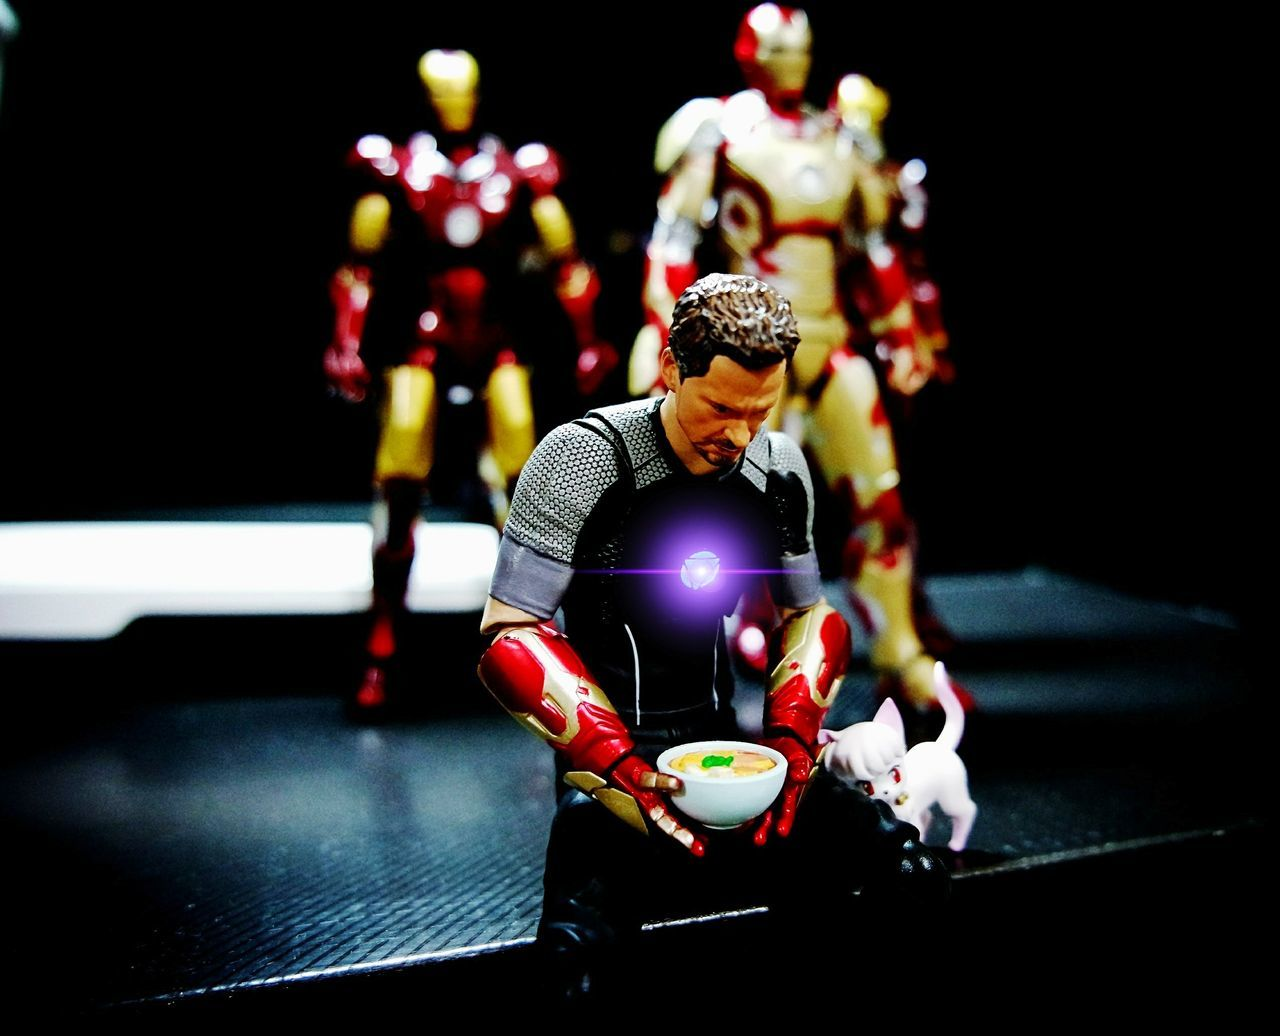 When ramen is the only option.. 🍜 Tony Stark Iron Man BANDAI Tamashiinations SHfiguarts Shfiguartsphotography Shf_ph Toyphotography Toycollectors